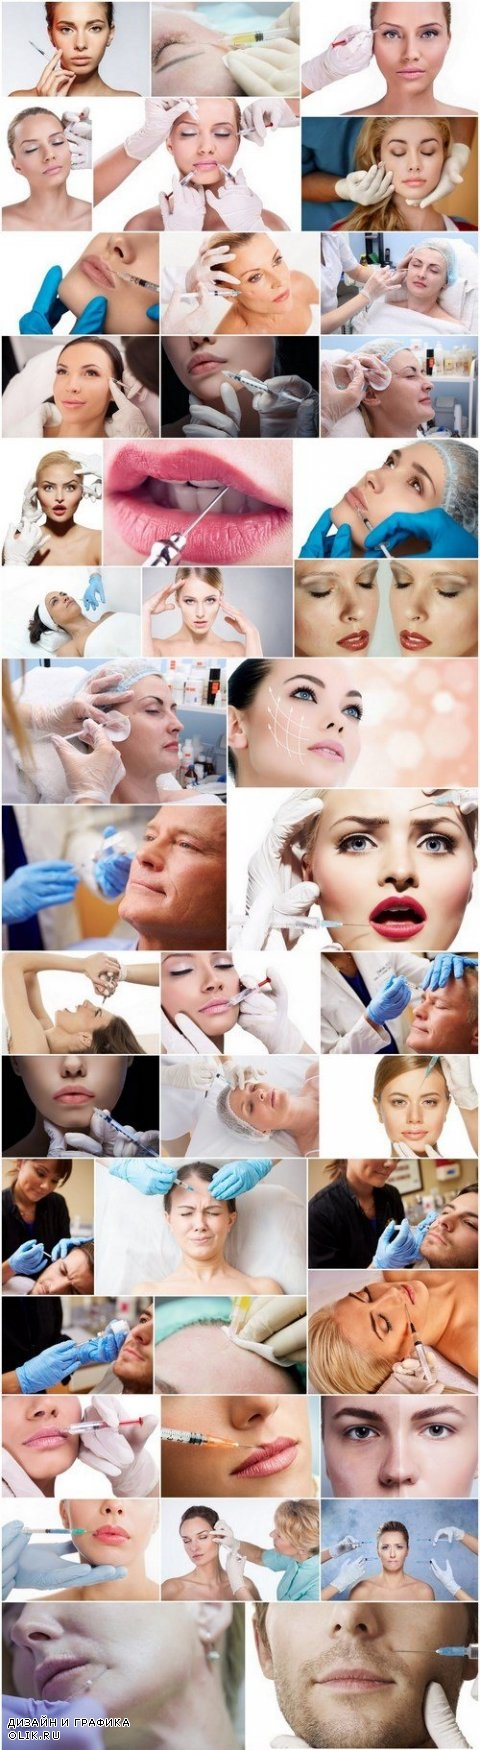 Cosmetology and Botox Injection - Set of 44xUHQ JPEG Professional Stock Images